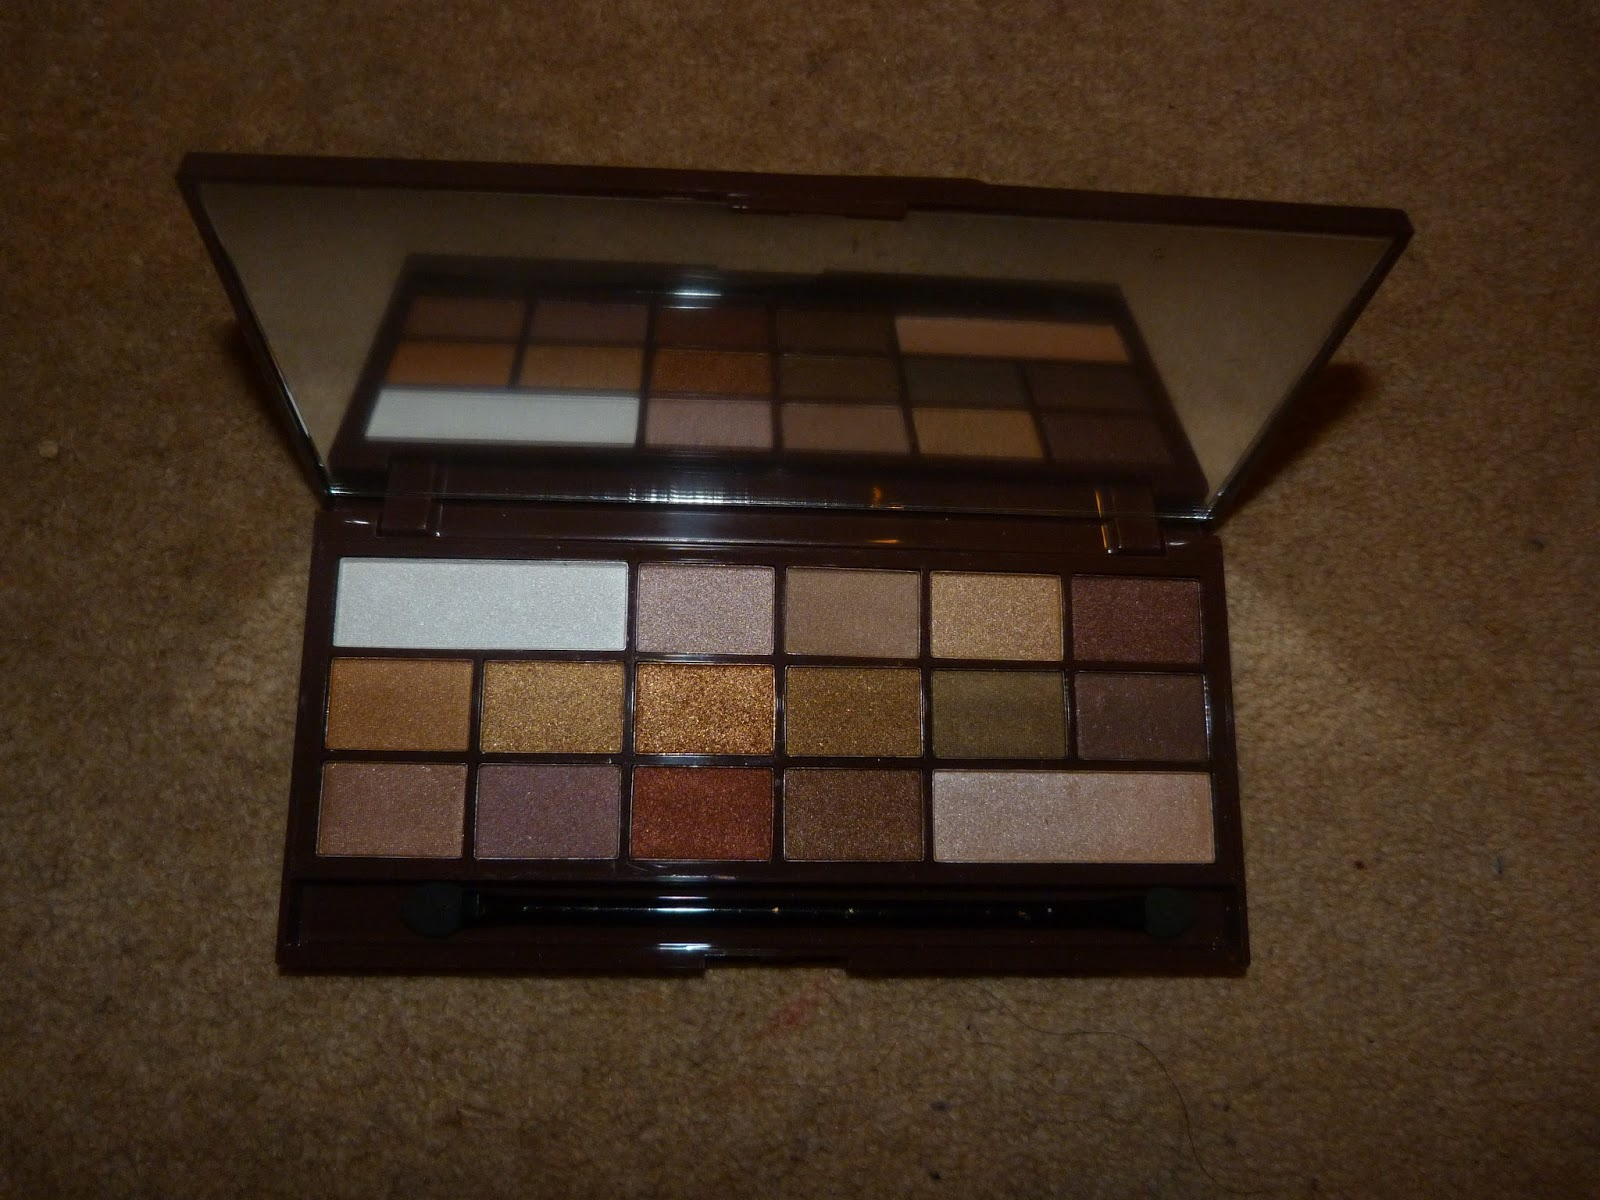 This palette has 16 shimmery eyeshadows in it in gold and brown shades it also has two paler colors in it a shimmery white and a shimmery nude color